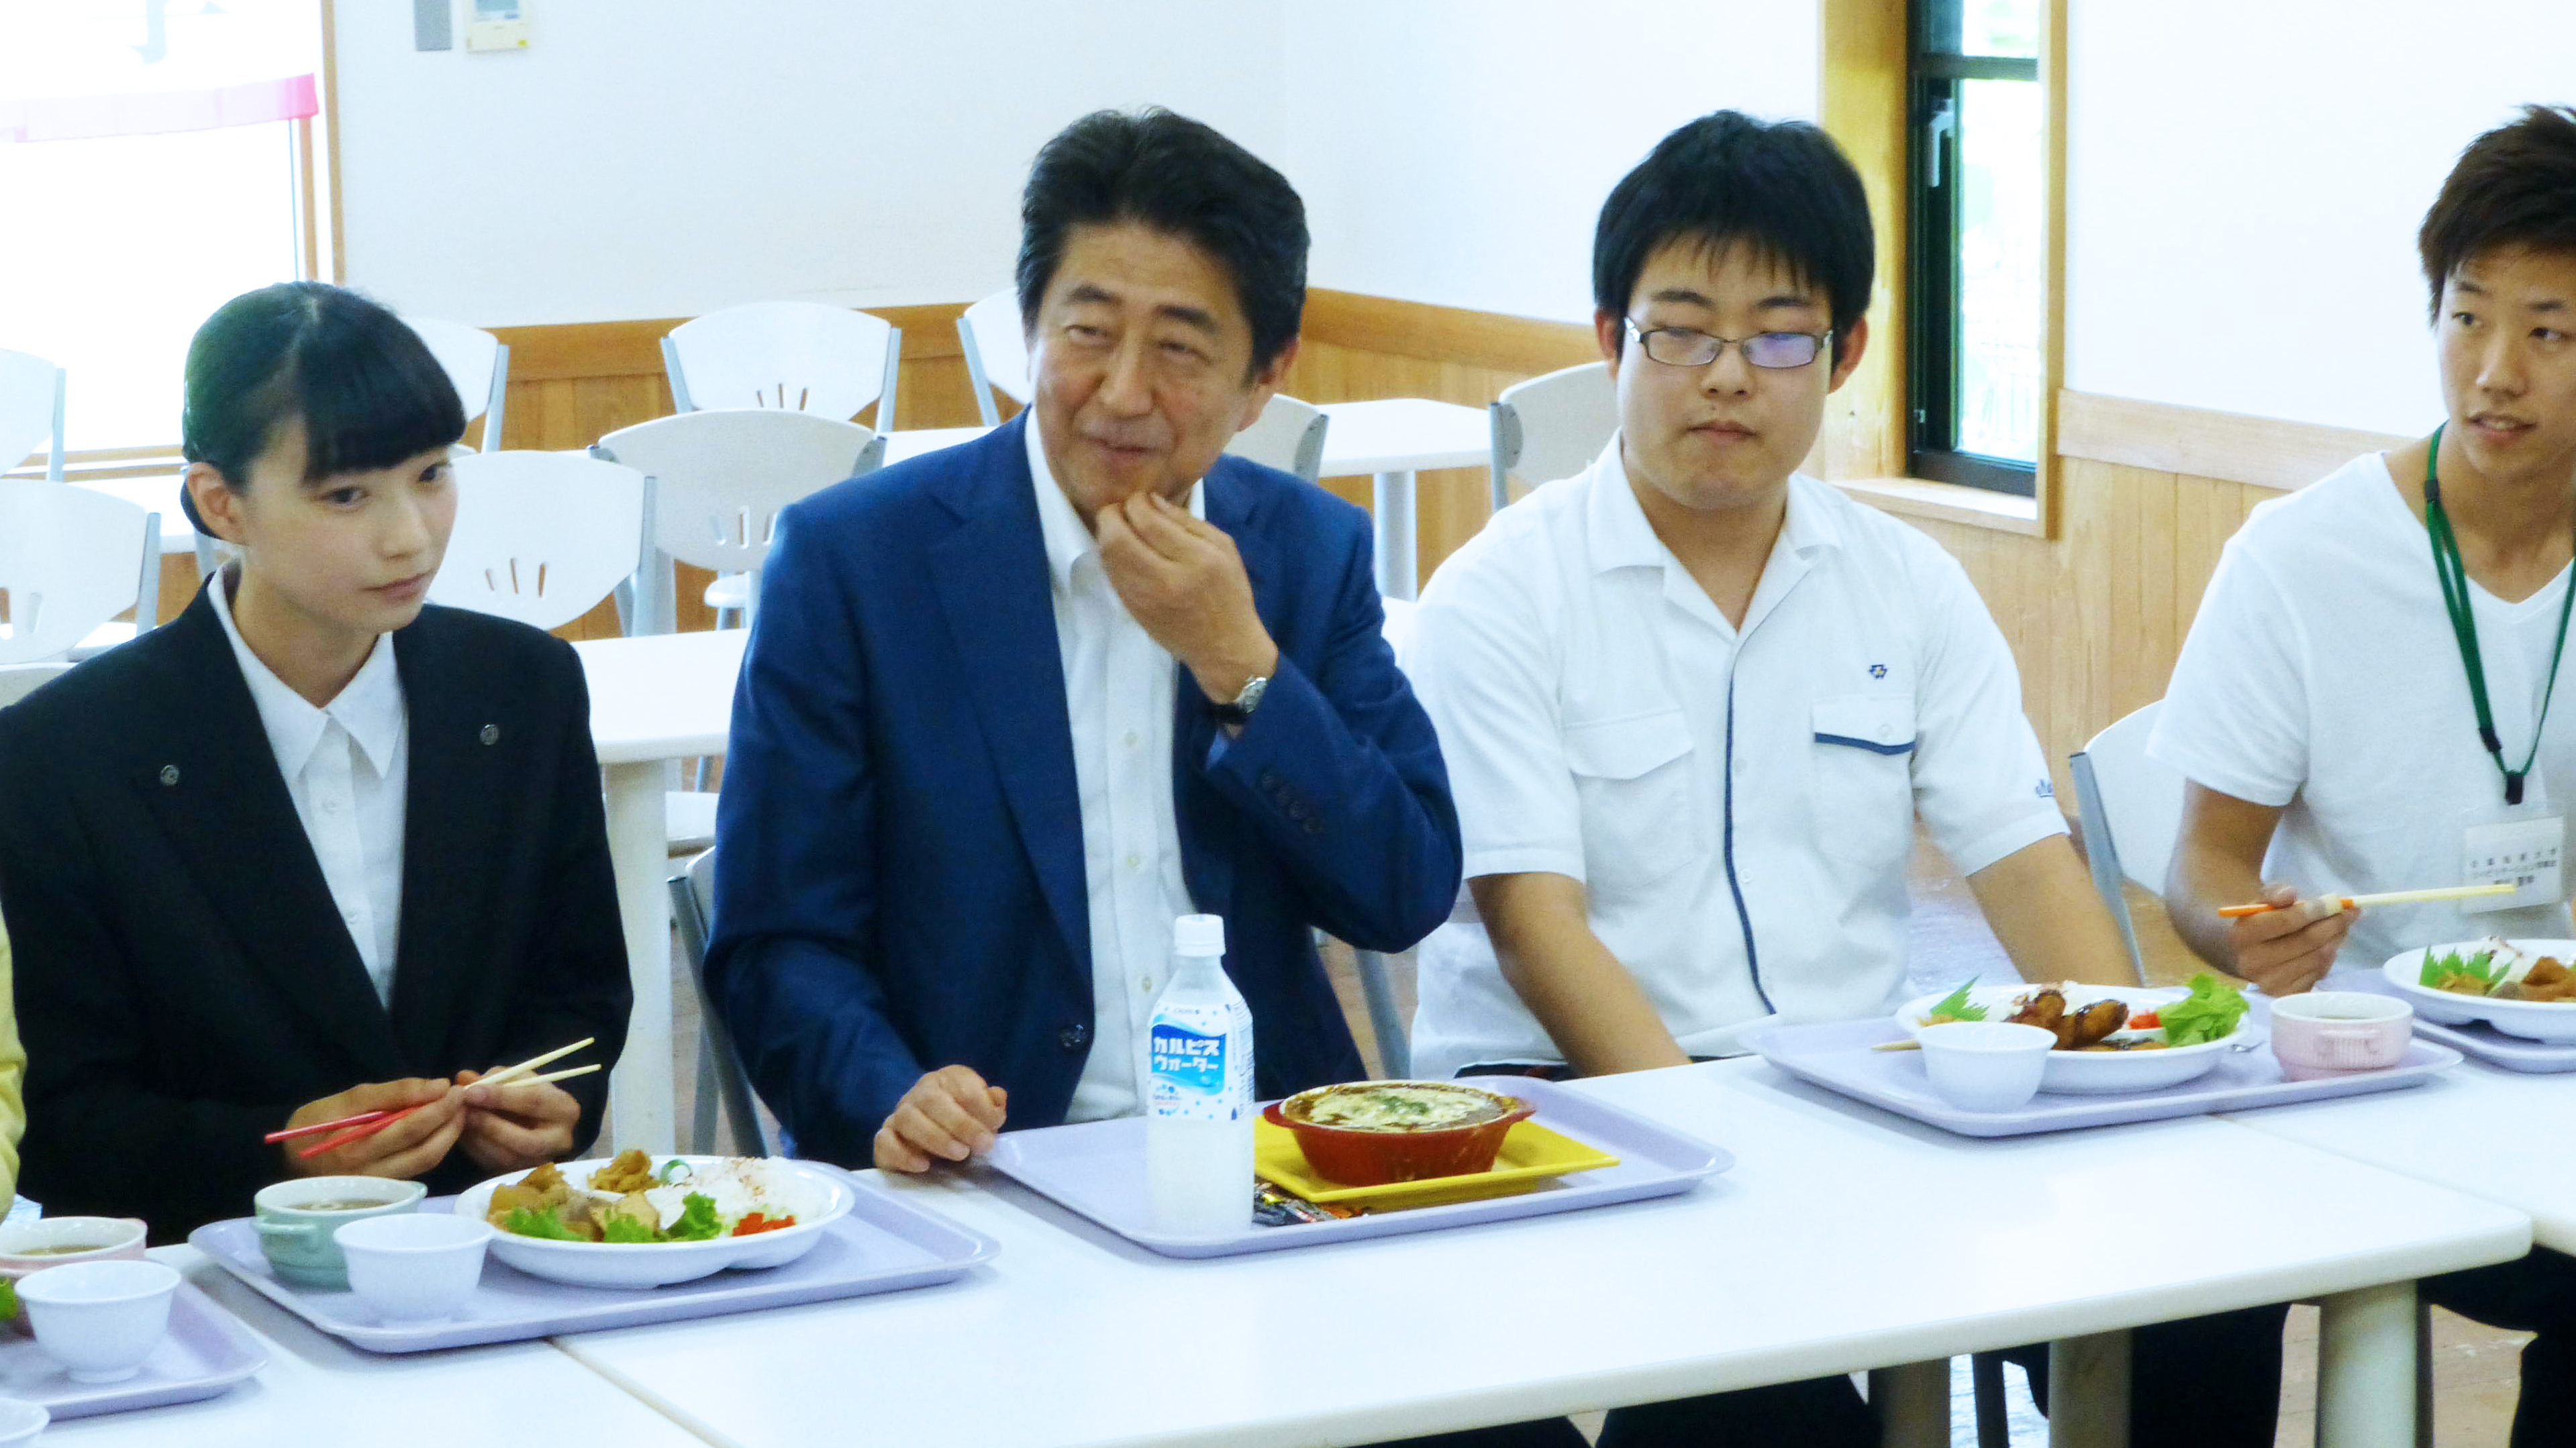 nikkei.com - MITSURU OBE - Japan's Abe owes his longevity to youth support